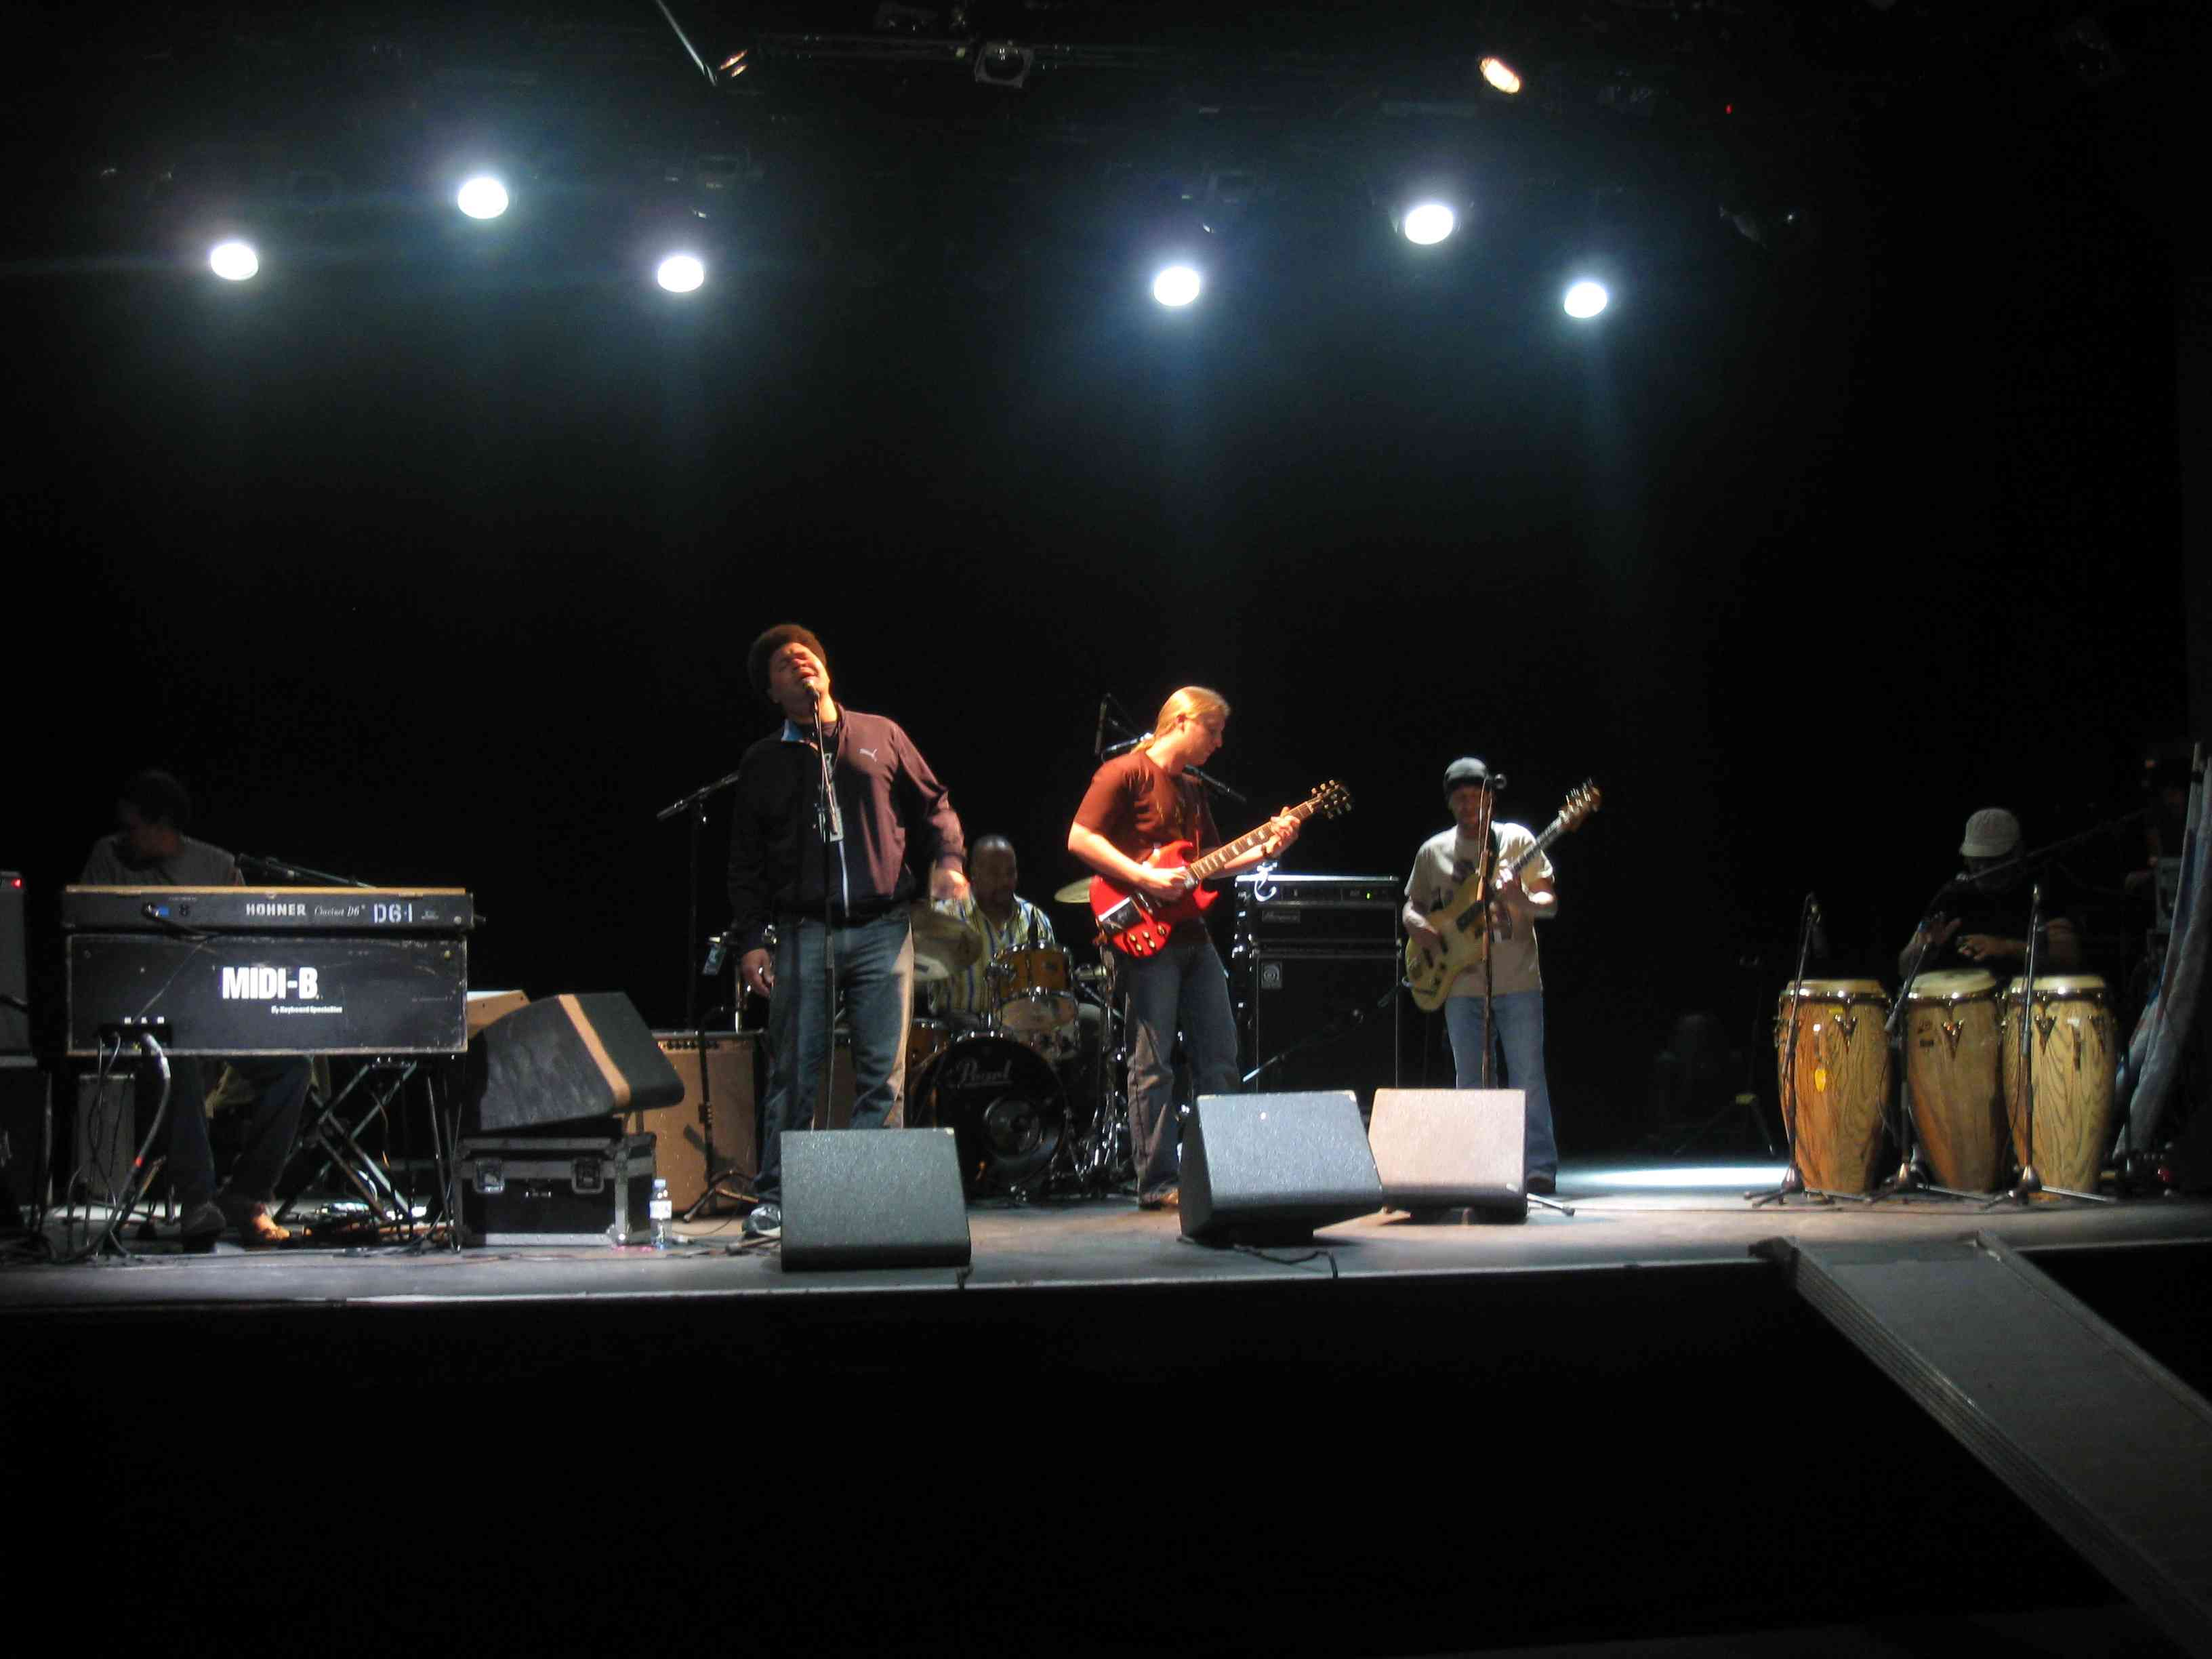 Derek Trucks band soundcheck